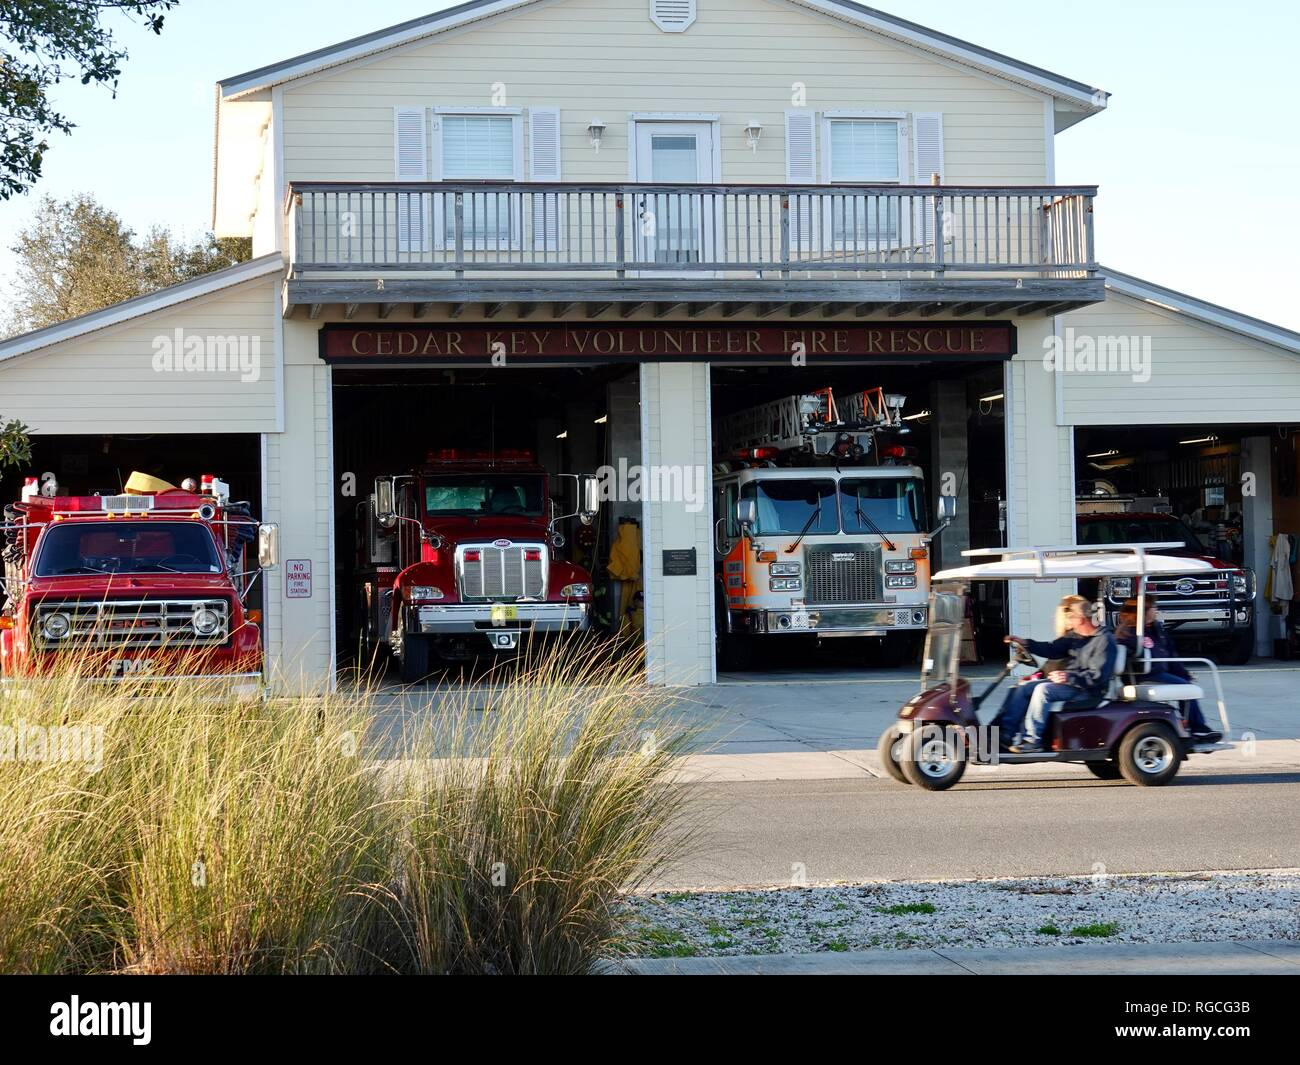 Couple in golf cart driving past the Cedar Key Volunteer Fire Rescue Department, Florida, USA. - Stock Image